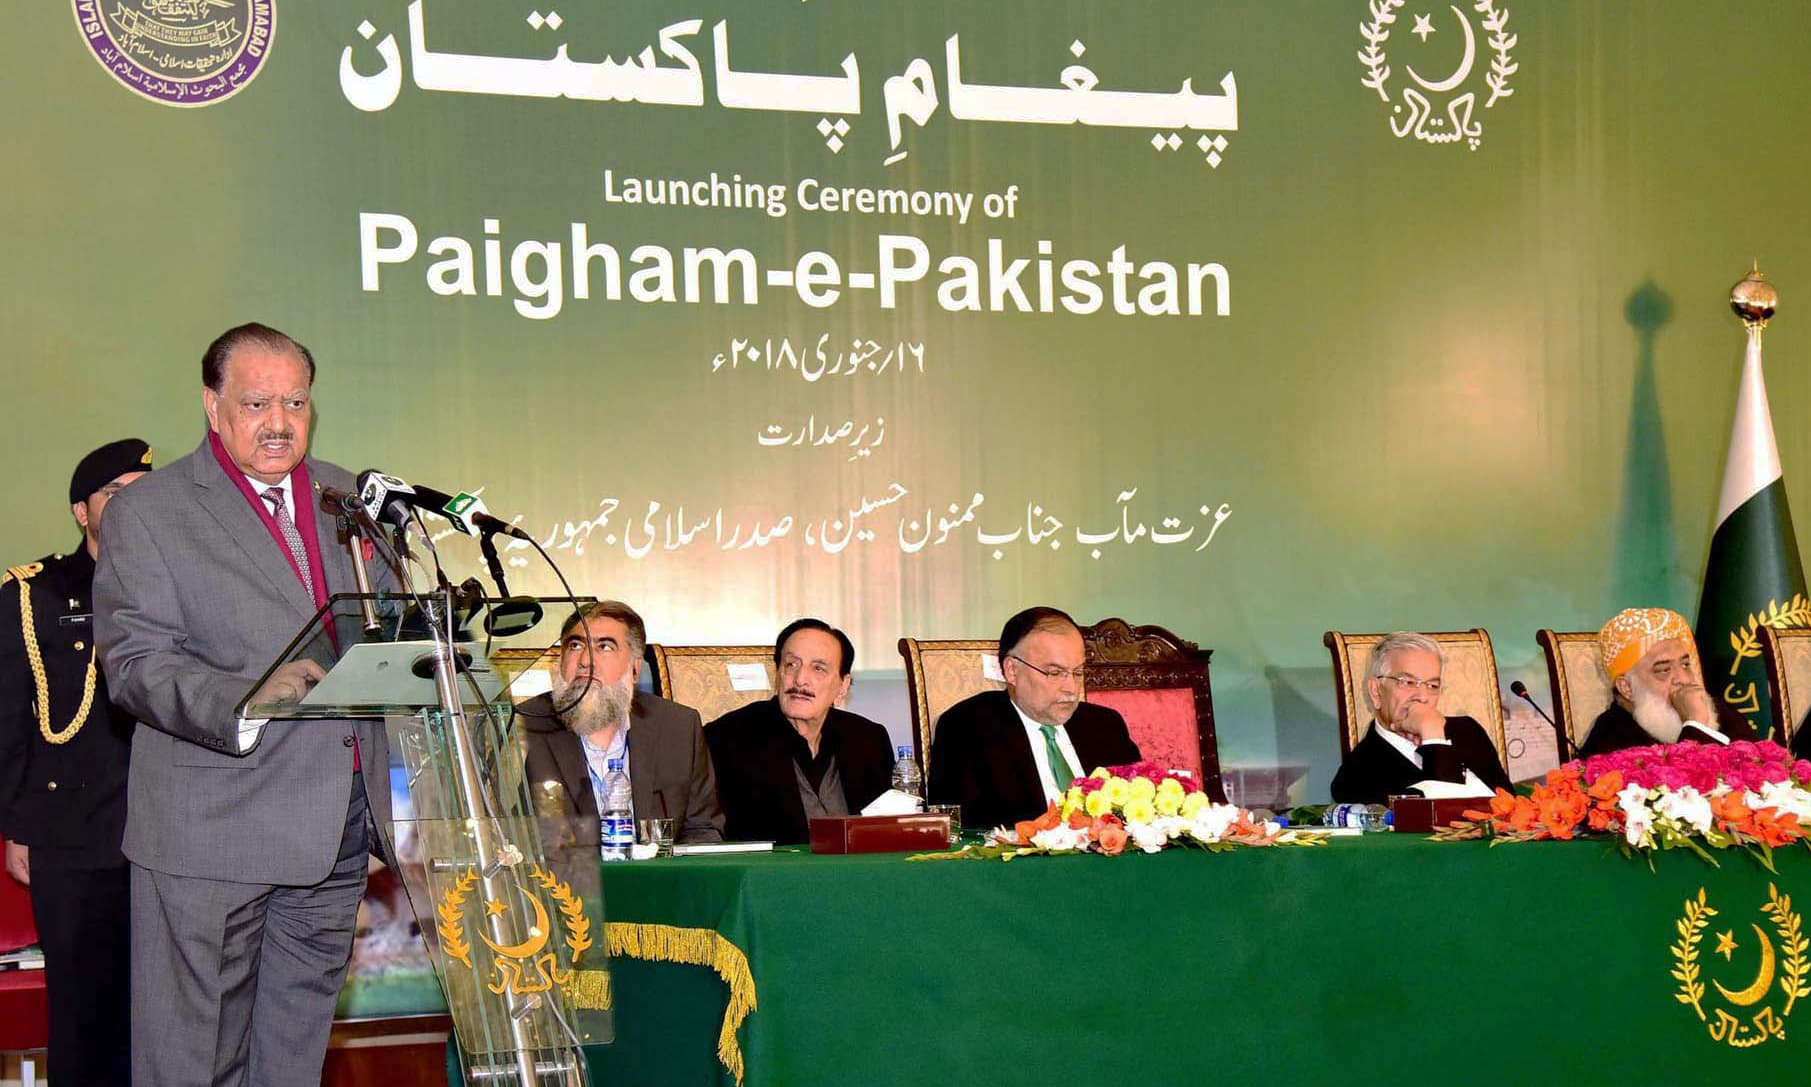 President Mamnoon Hussain addresses during the  Launching Ceremony of Paigham-e-Pakistan held at the Aiwan-e-Sadr in Islamabad. —APP